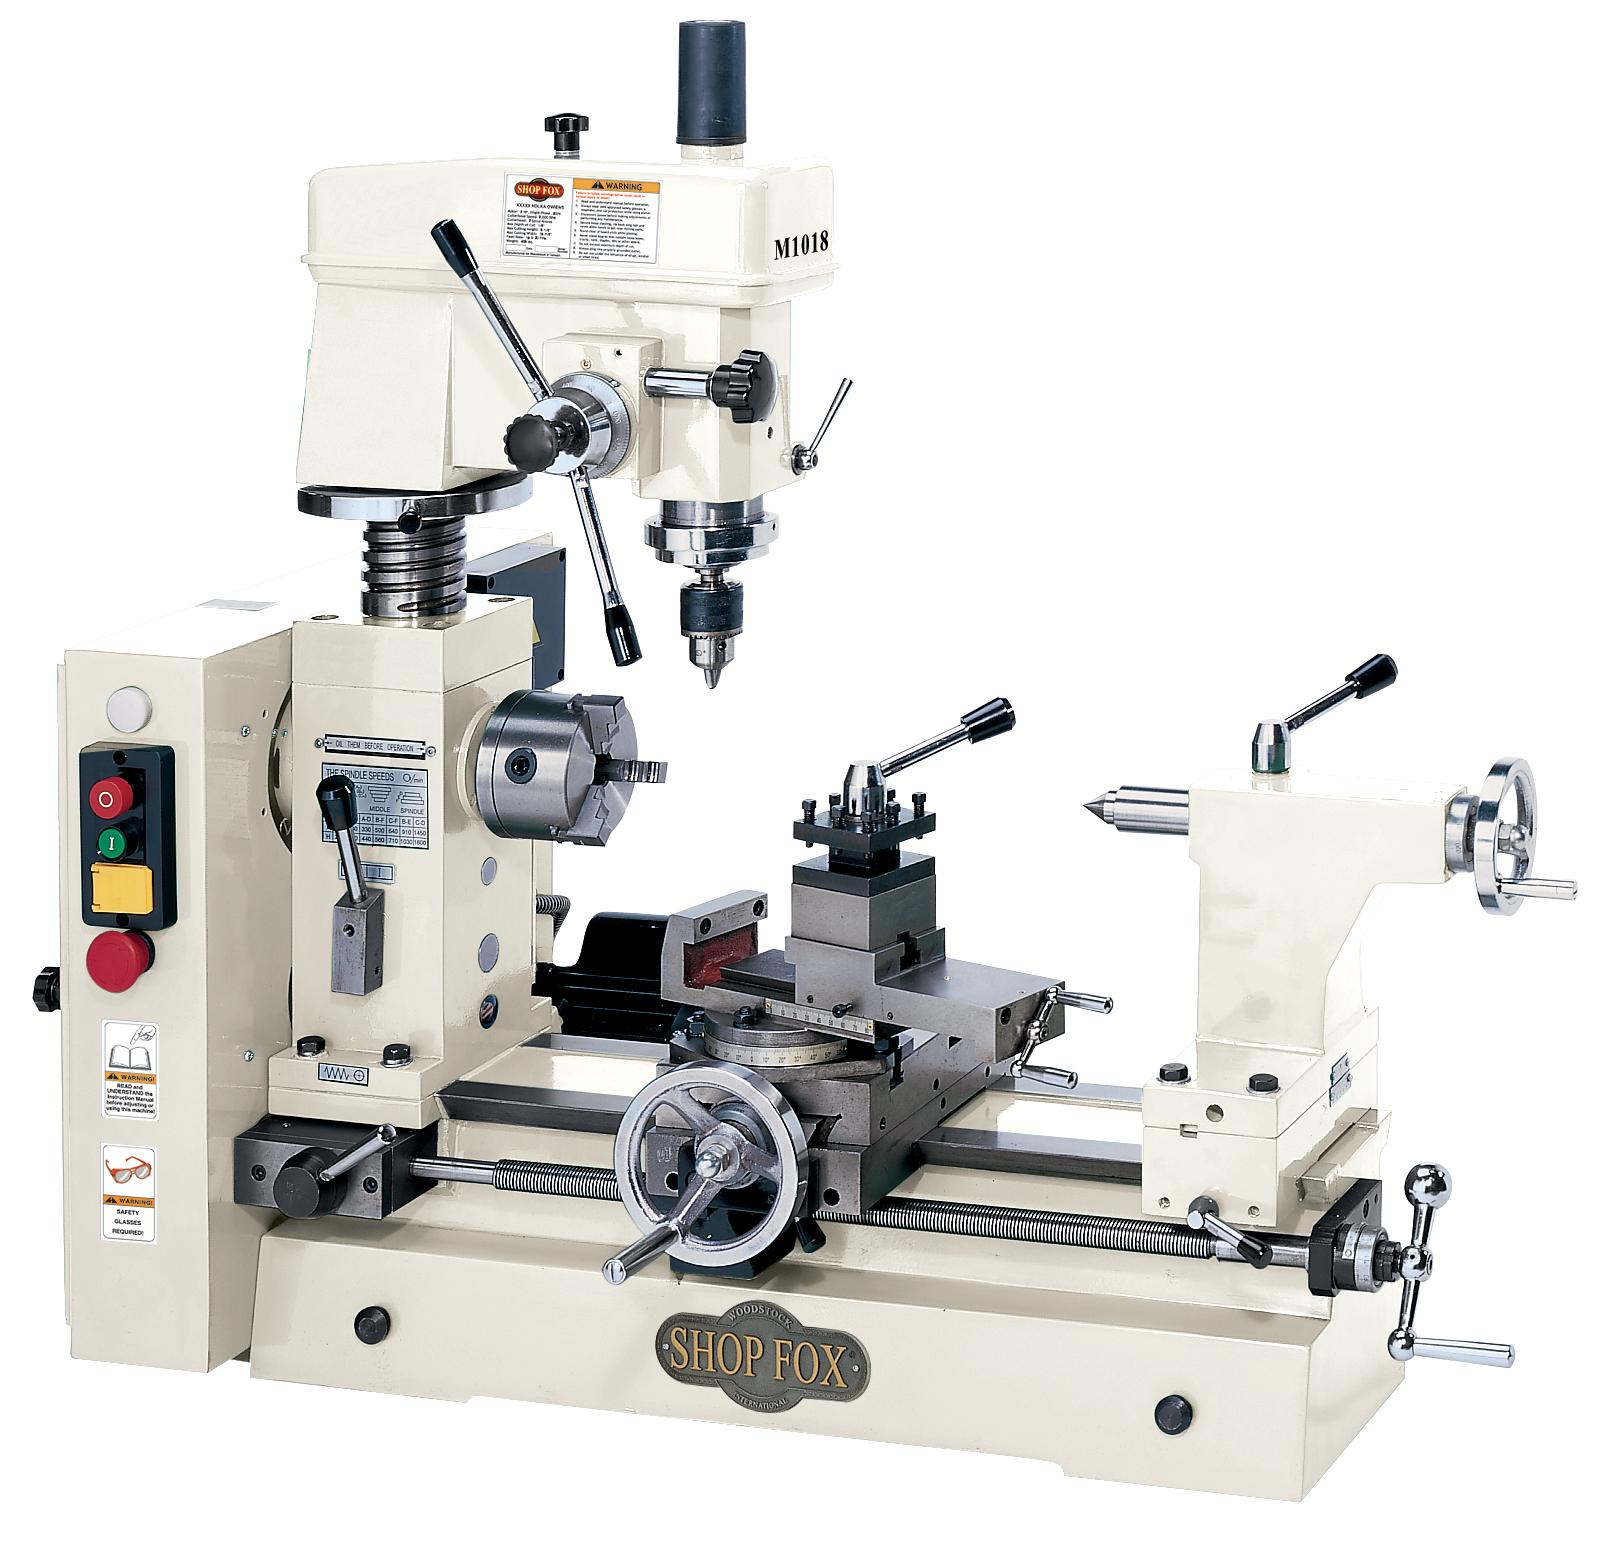 Used Milling Machines Power Tools Tools Home Amazon Com >> Shop Fox M1018 Combo Lathe Mill